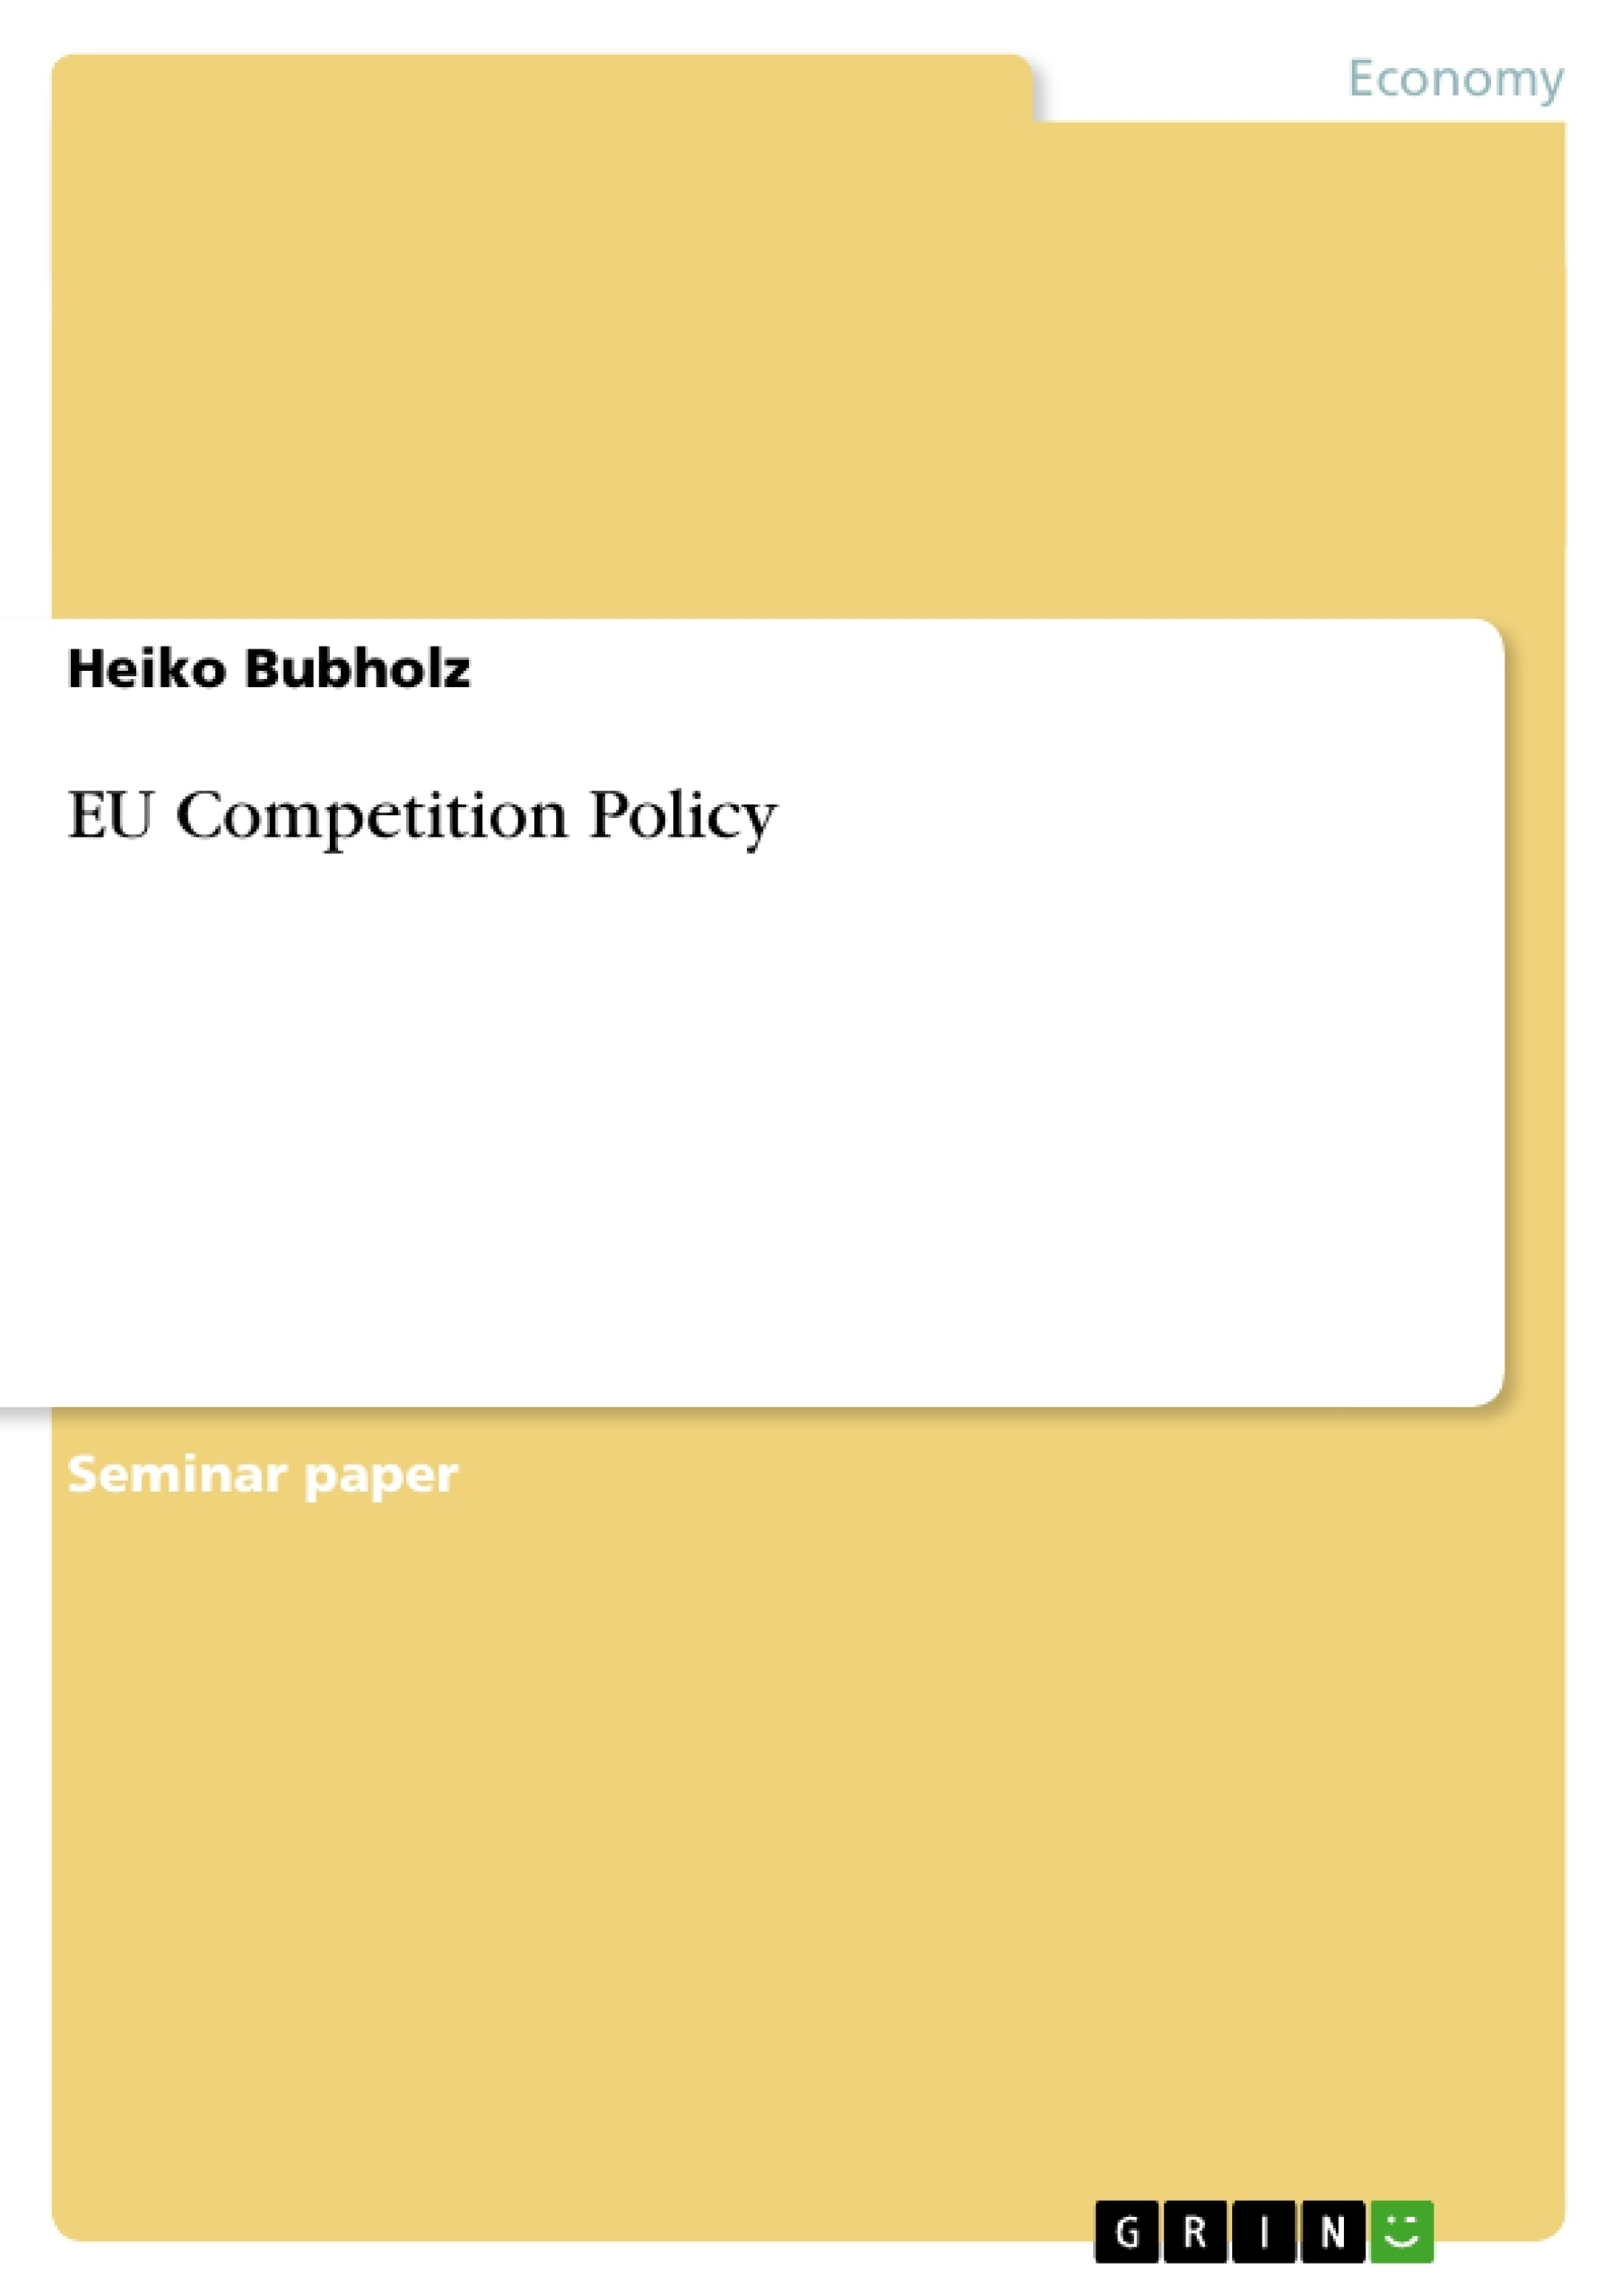 Title: EU Competition Policy